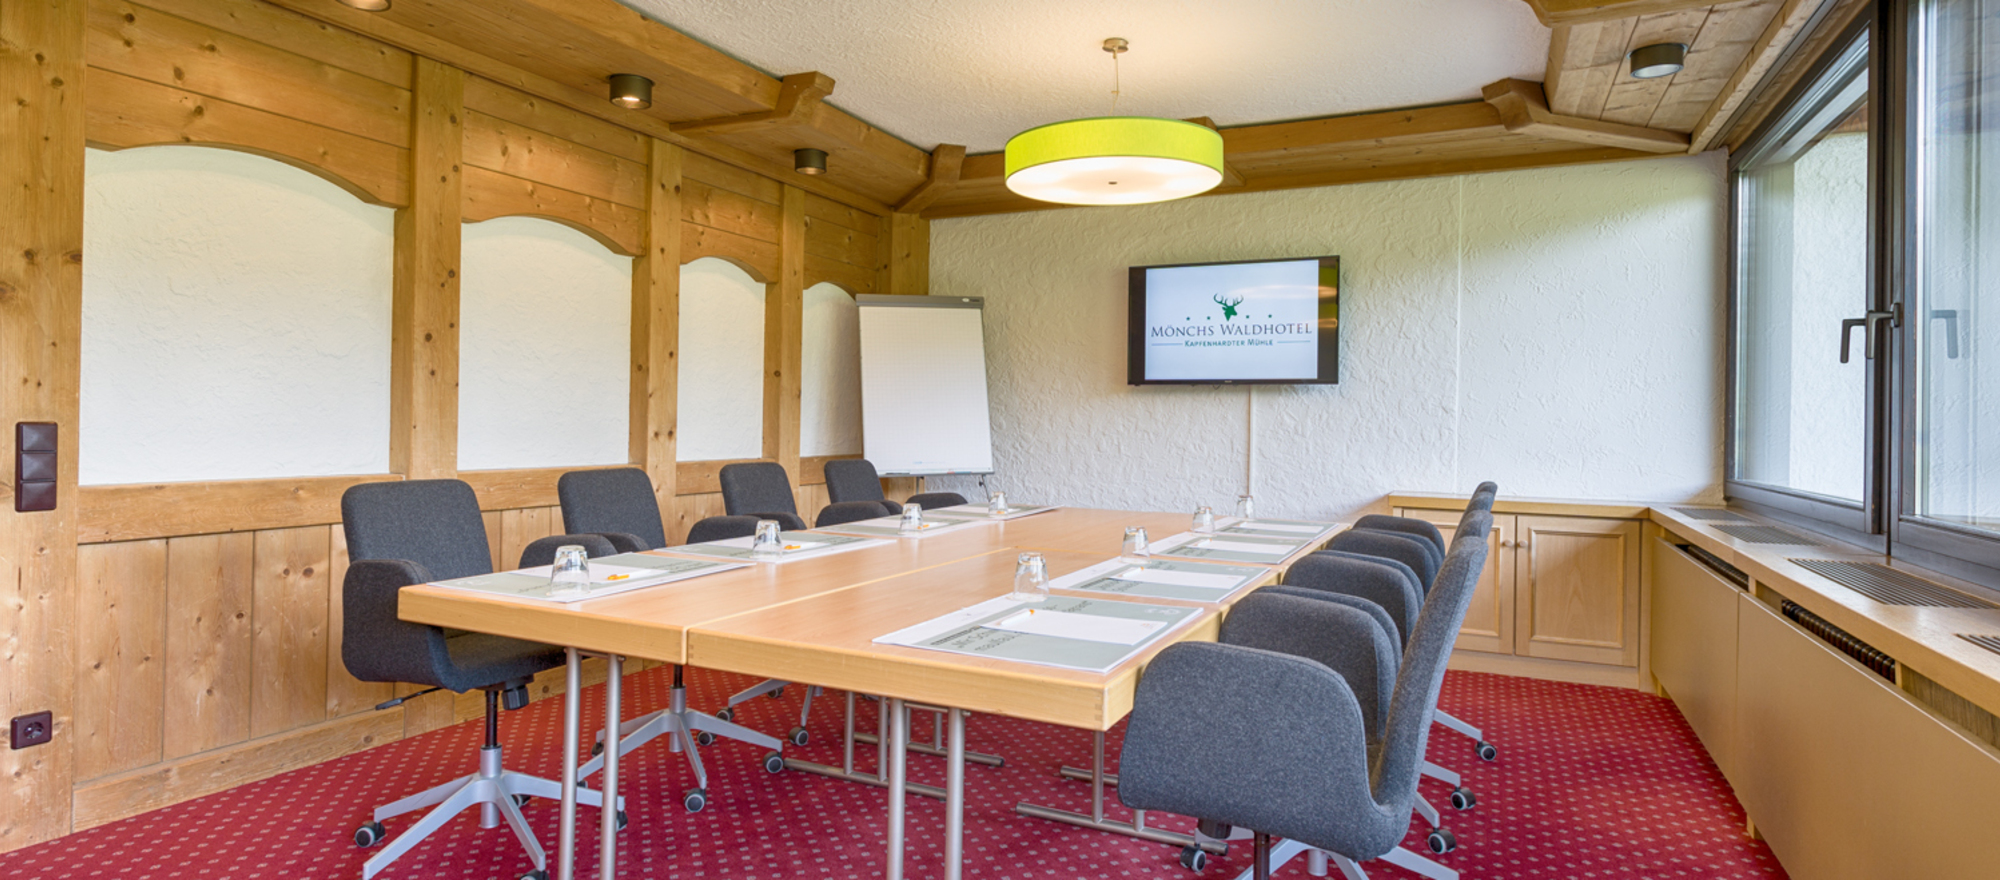 The boardrooms at the 4-star Ringhotel Moenchs Waldhotel in Unterreichenbach have wireless wePresent© presentation equipment